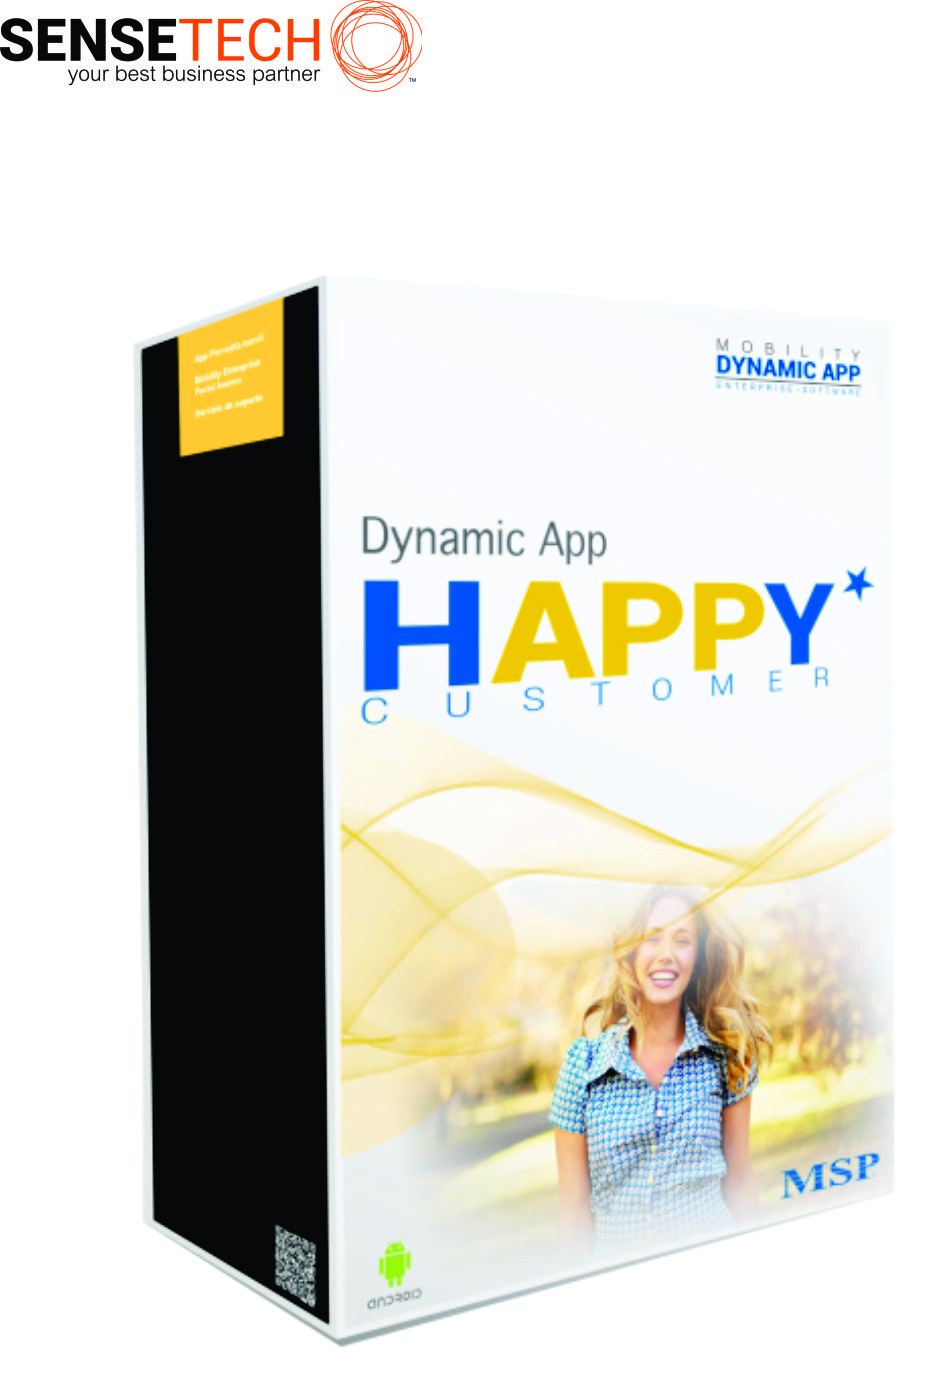 Dynamic App Happy Costumer (Satisfacción del cliente)